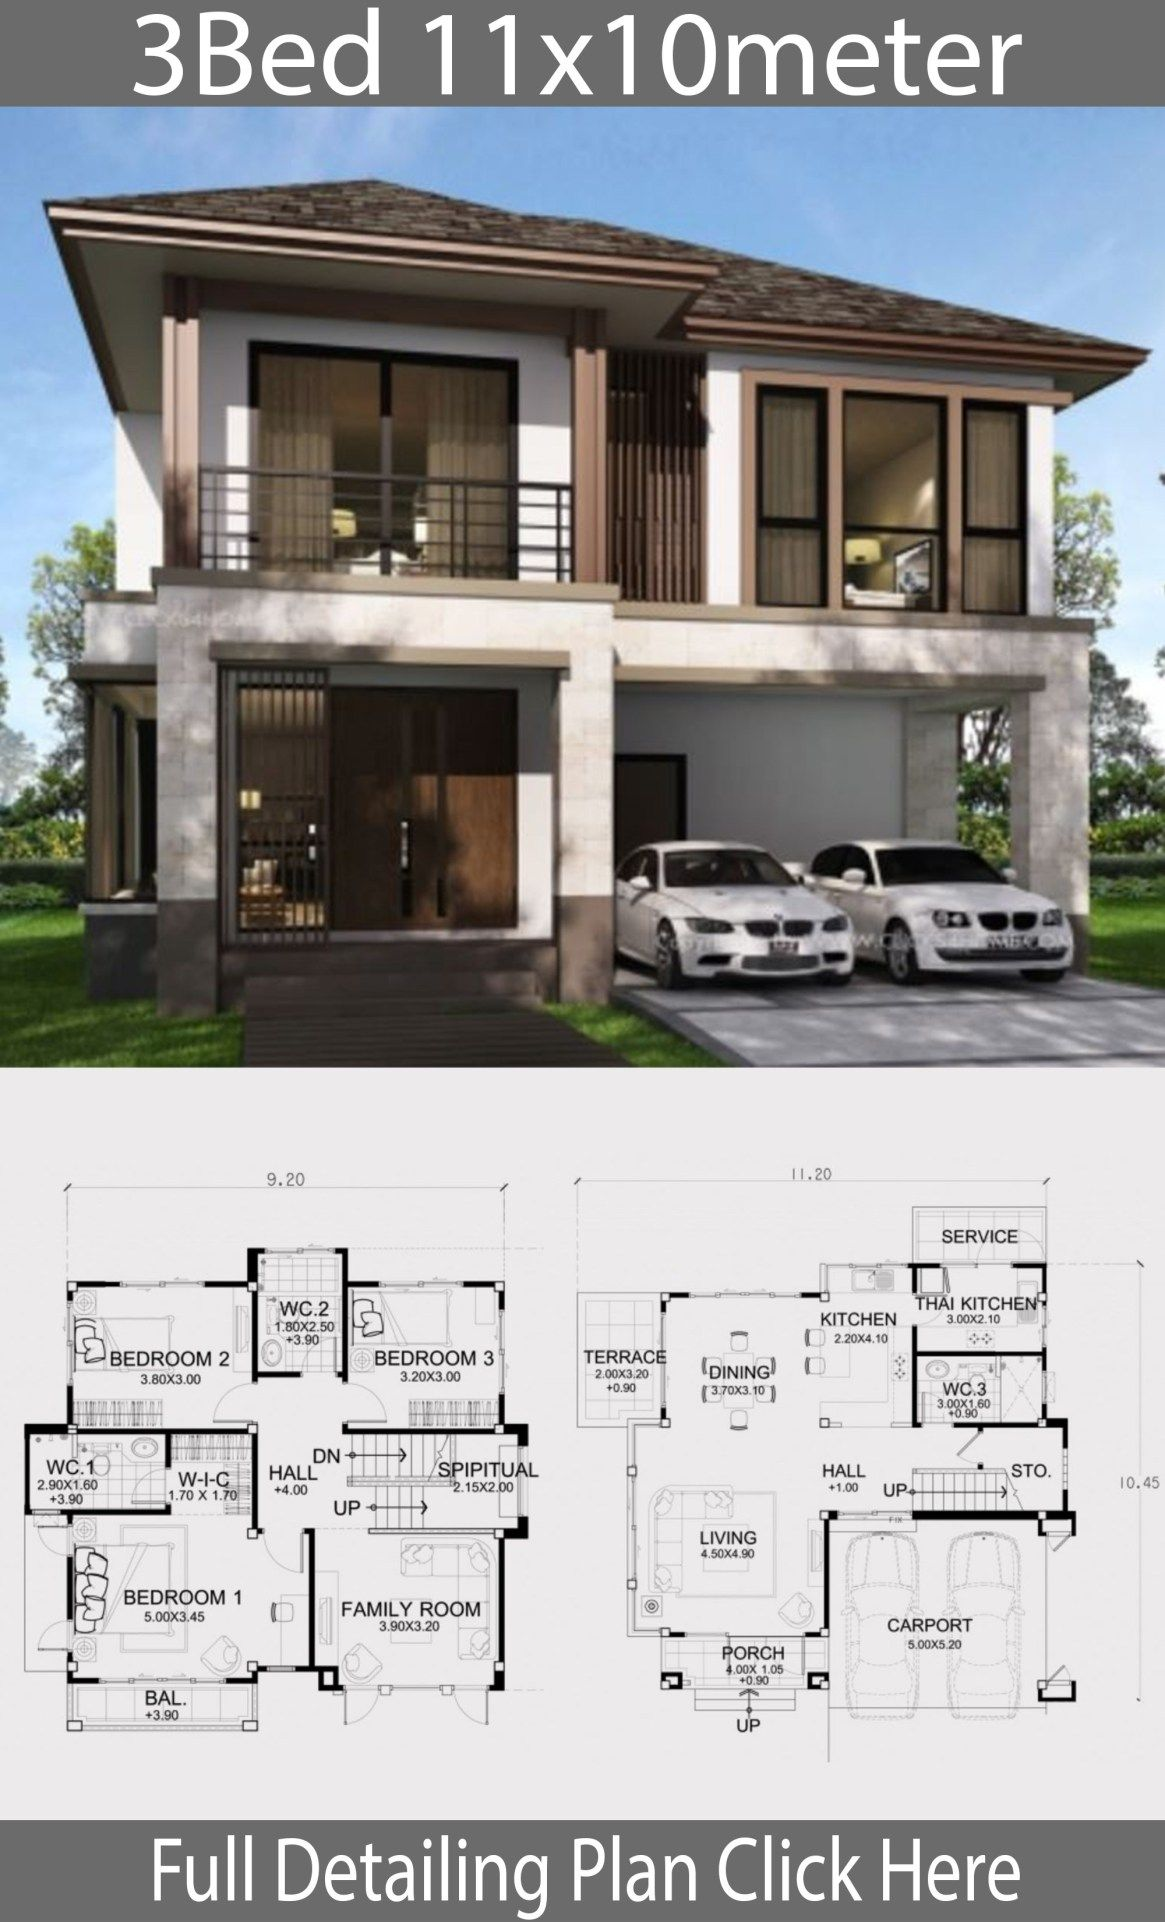 Home Design Plan 11x10m With 3 Bedrooms With Images Home Design Plan Home Design Plans